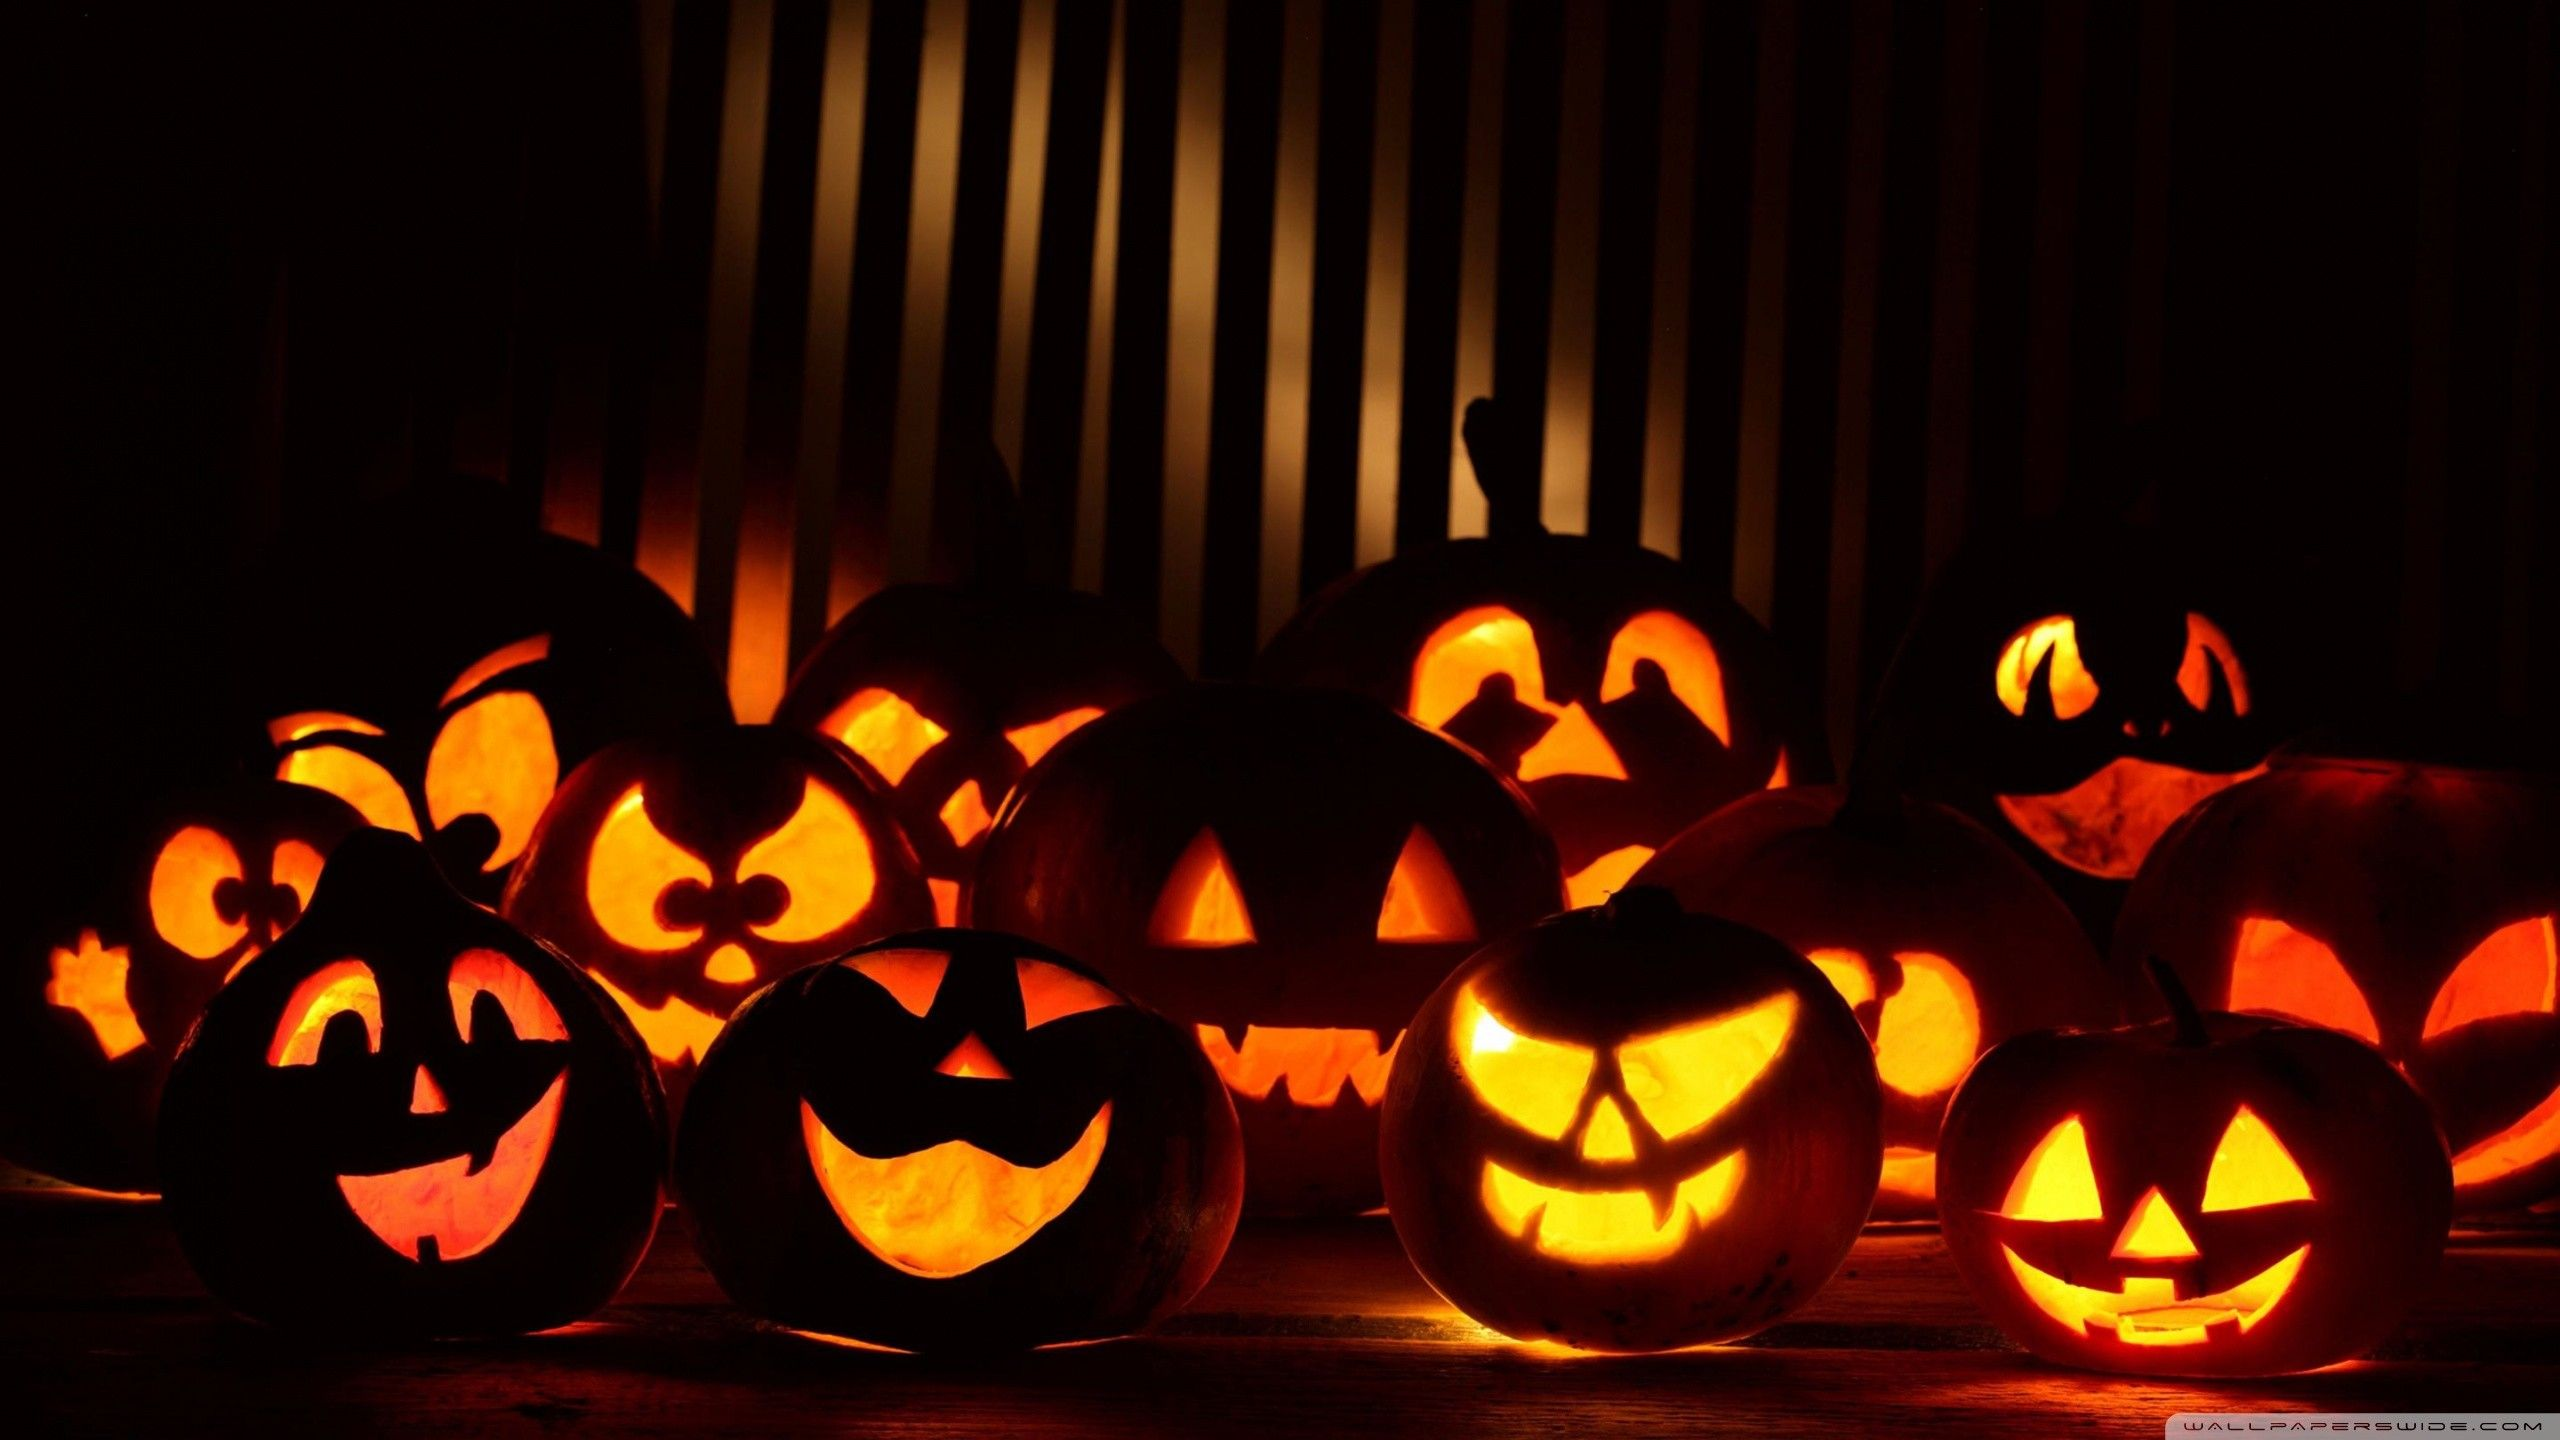 Halloween Desktop Wallpapers Top Free Halloween Desktop Backgrounds Wallpaperaccess